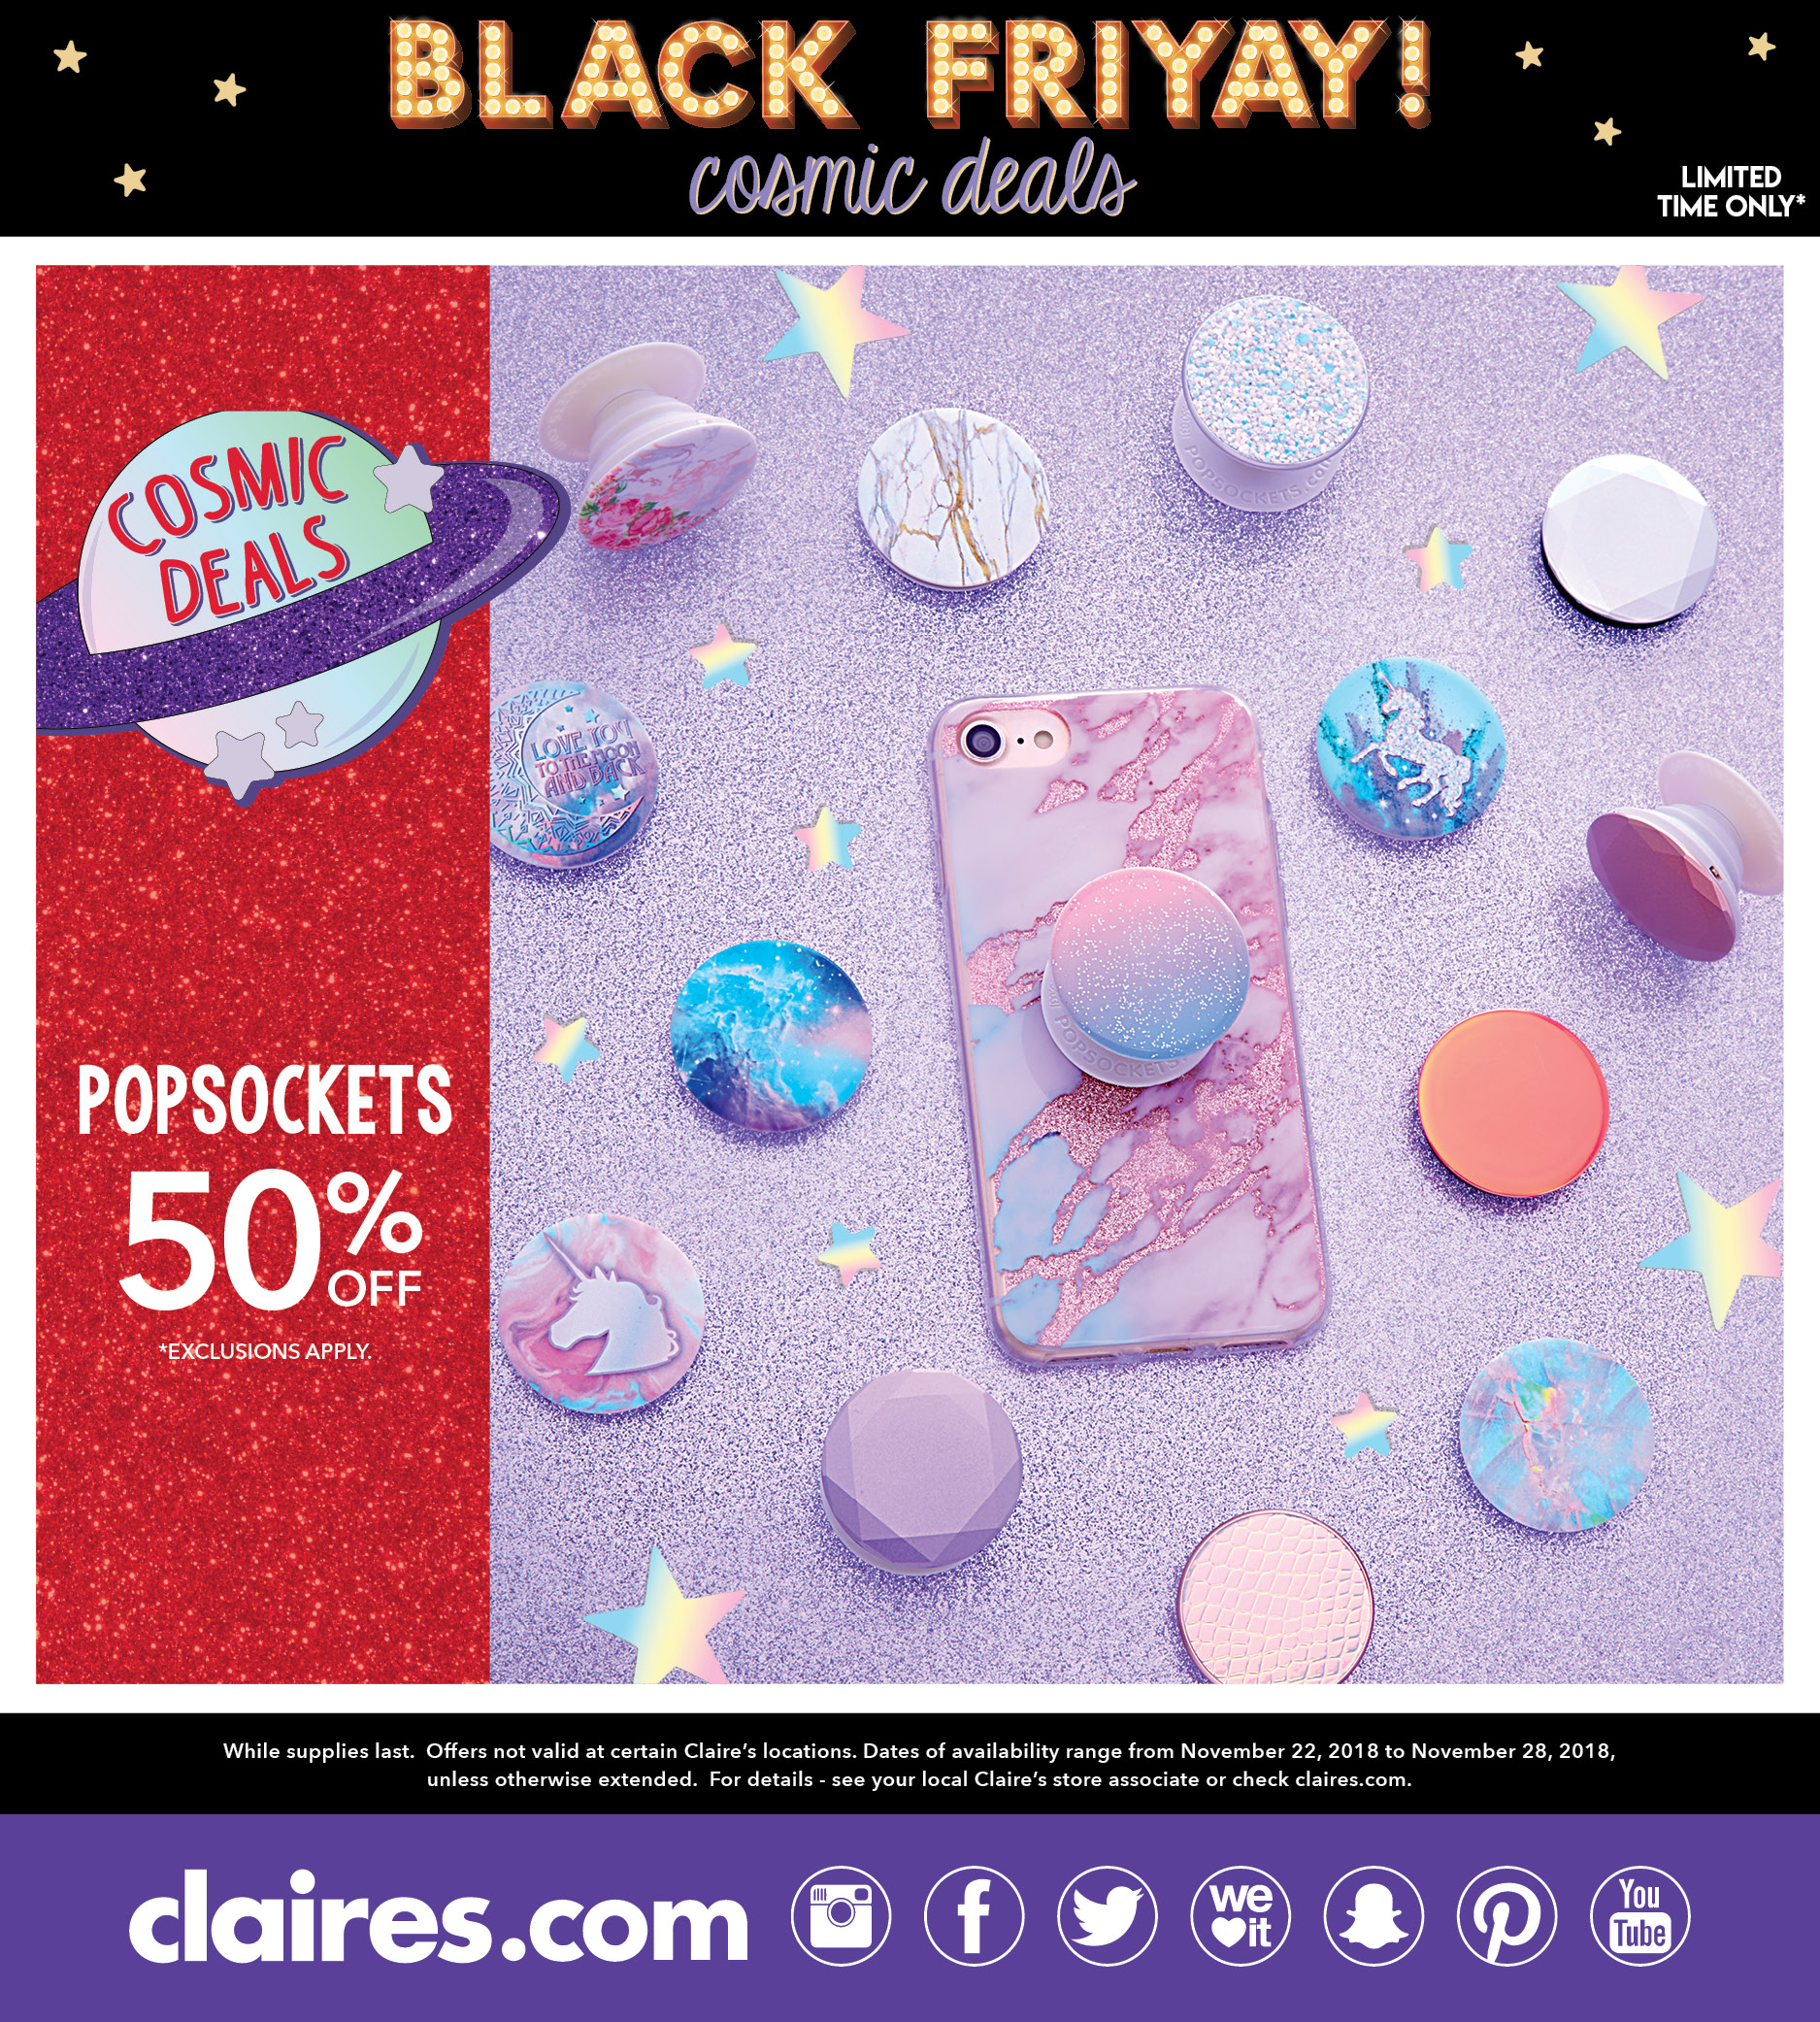 Claire's Cosmic Deals